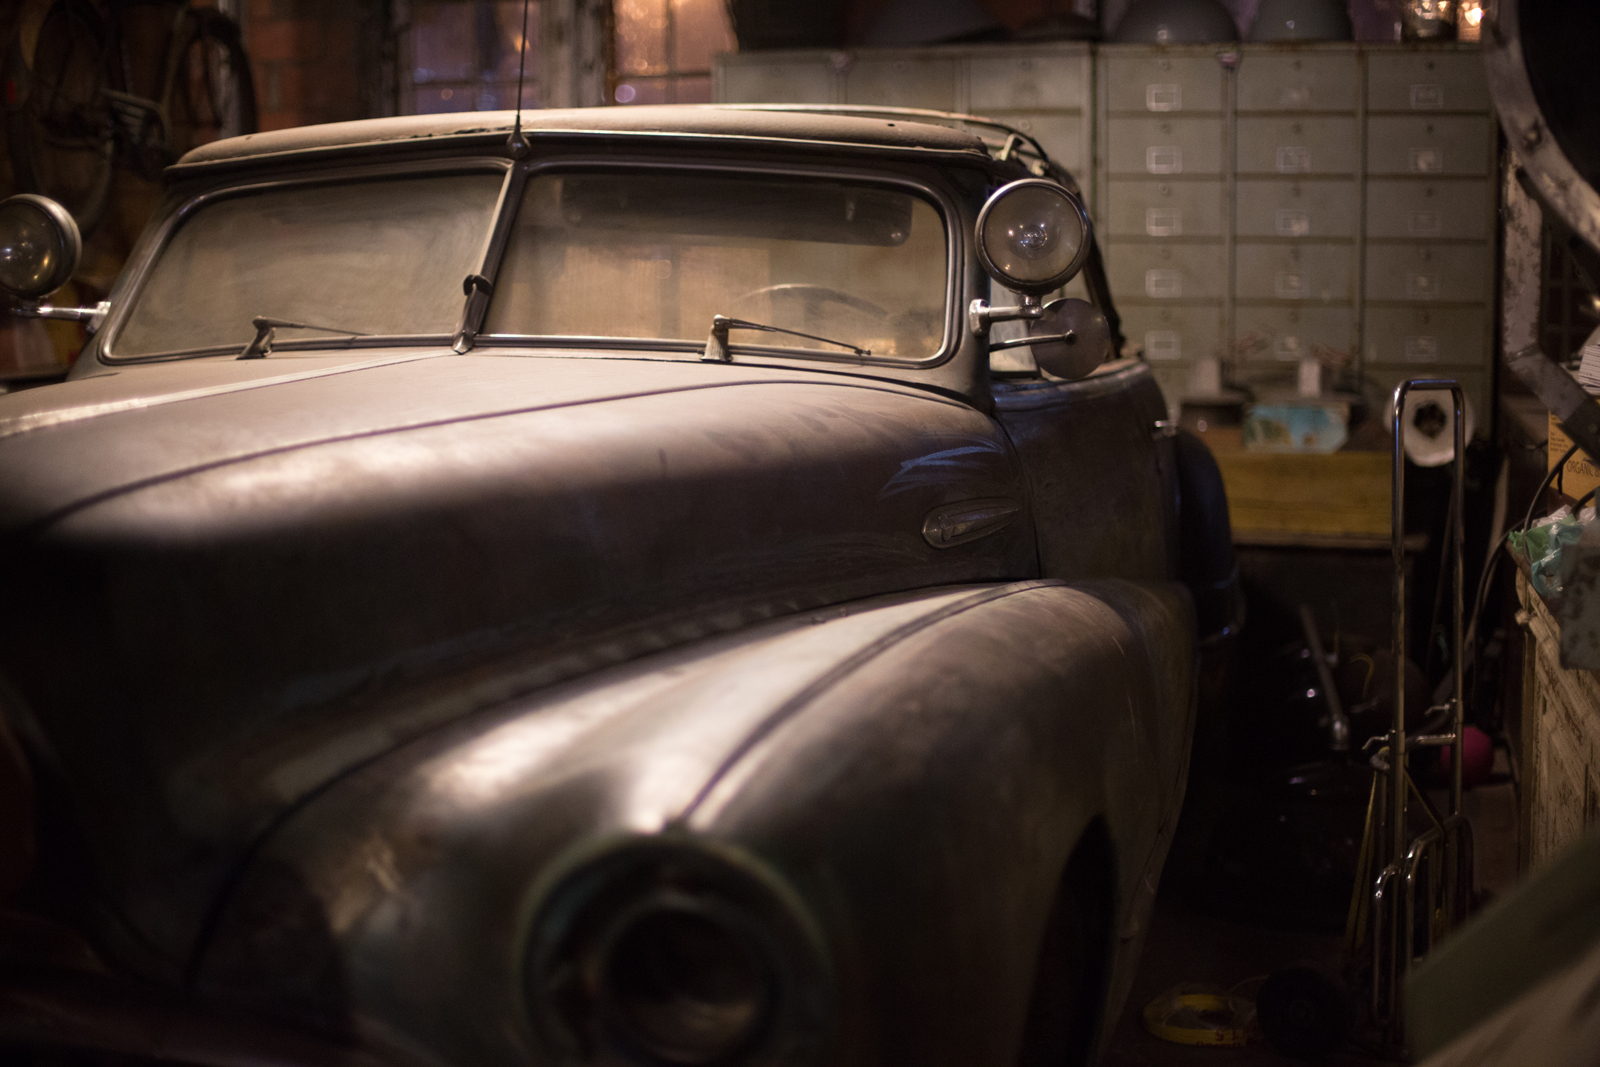 A dusty classic car project stored in a dark garage